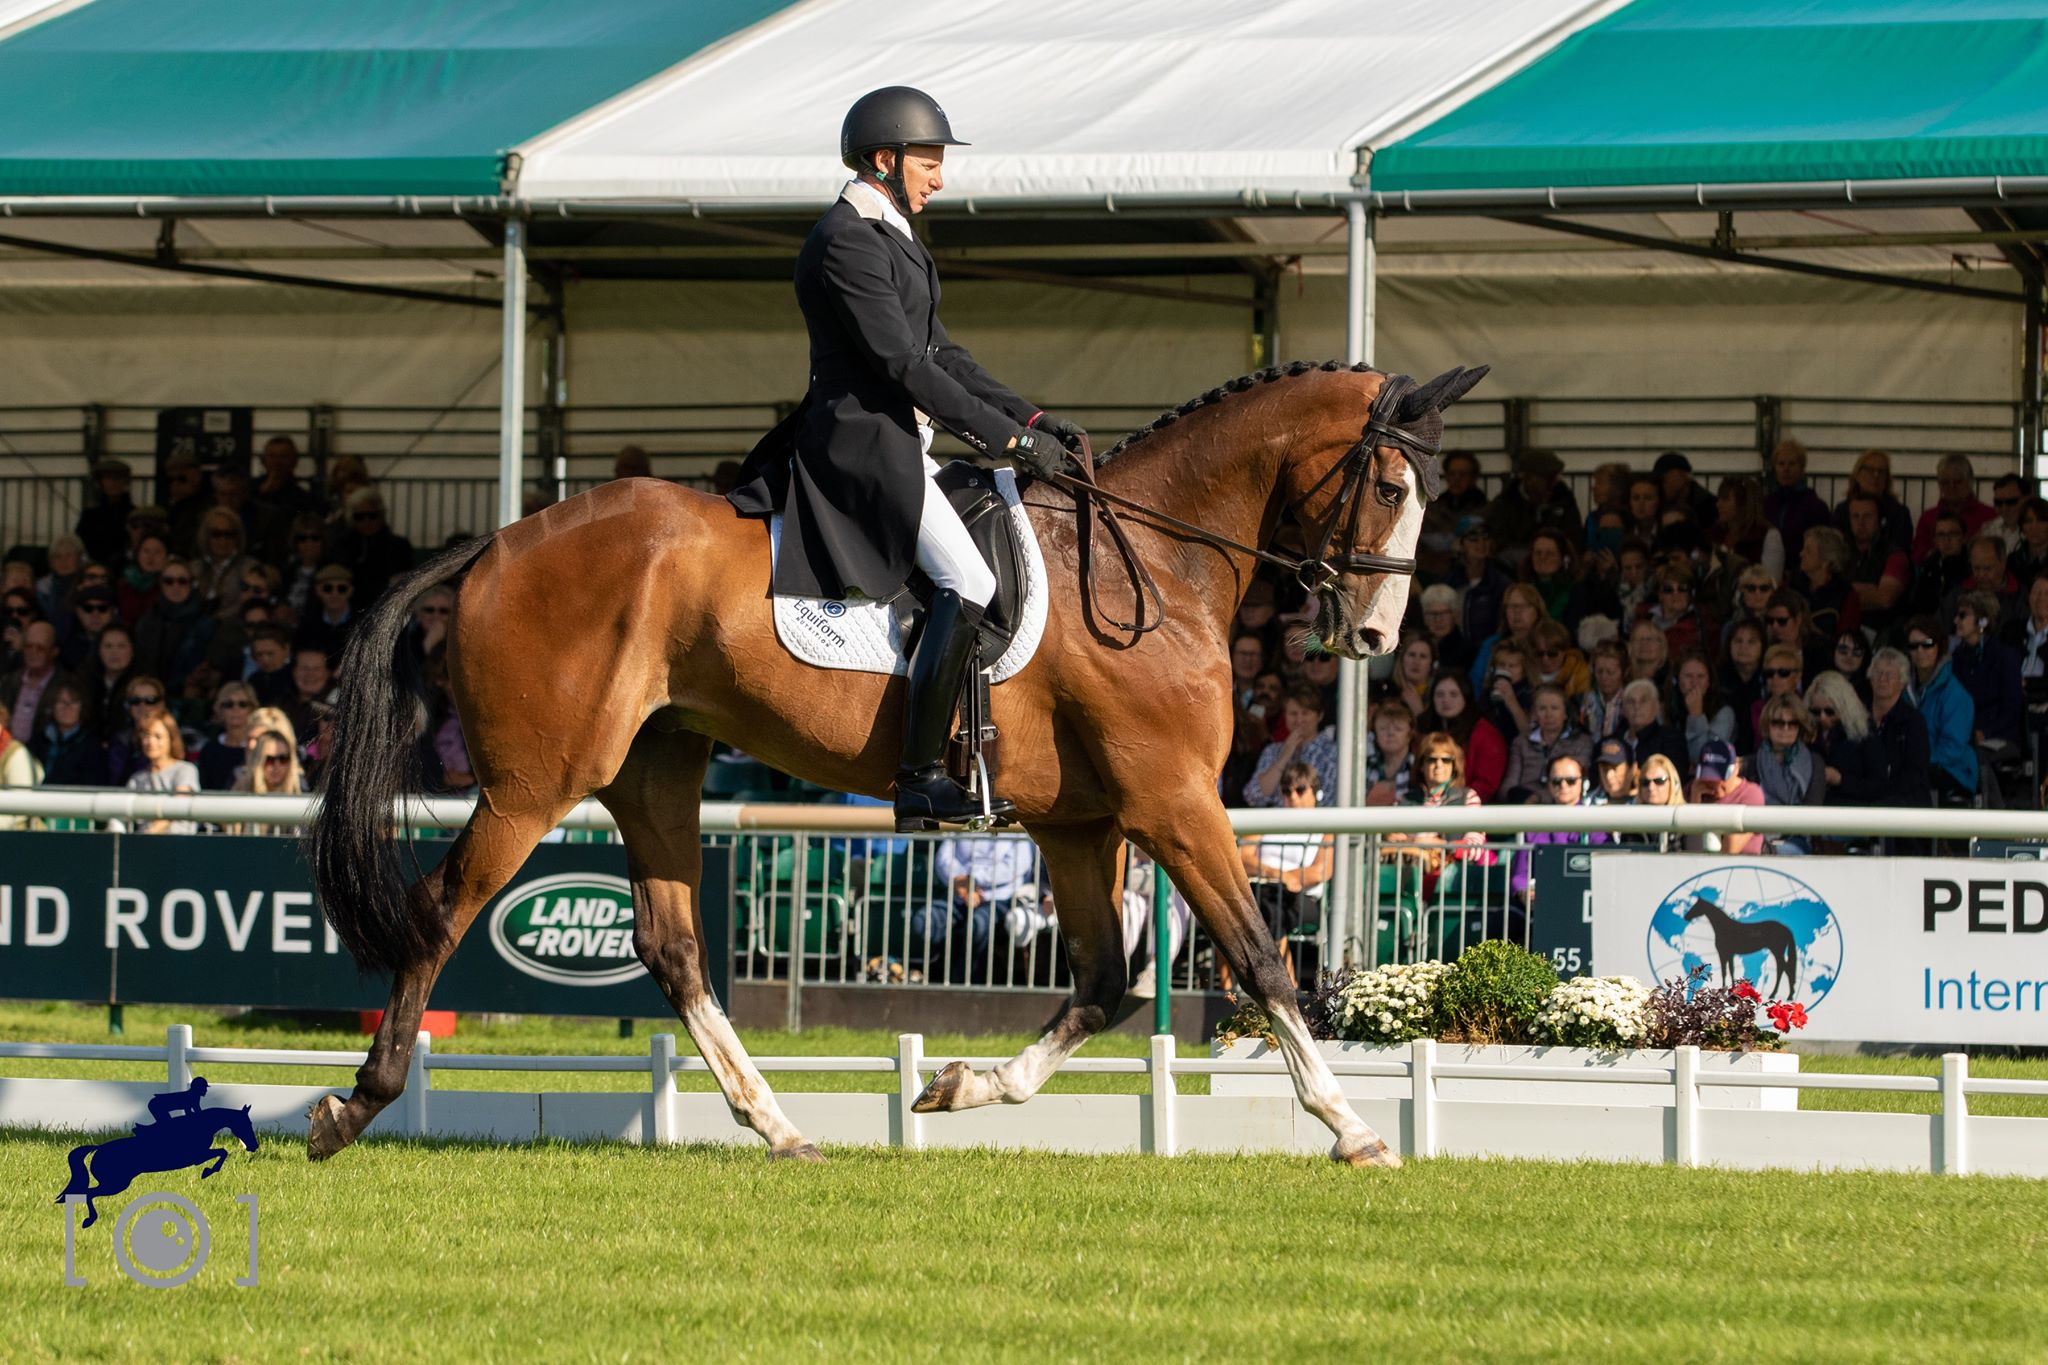 Cheshire Rider Micheal Owen Completes the Dressage at Burghley 2019